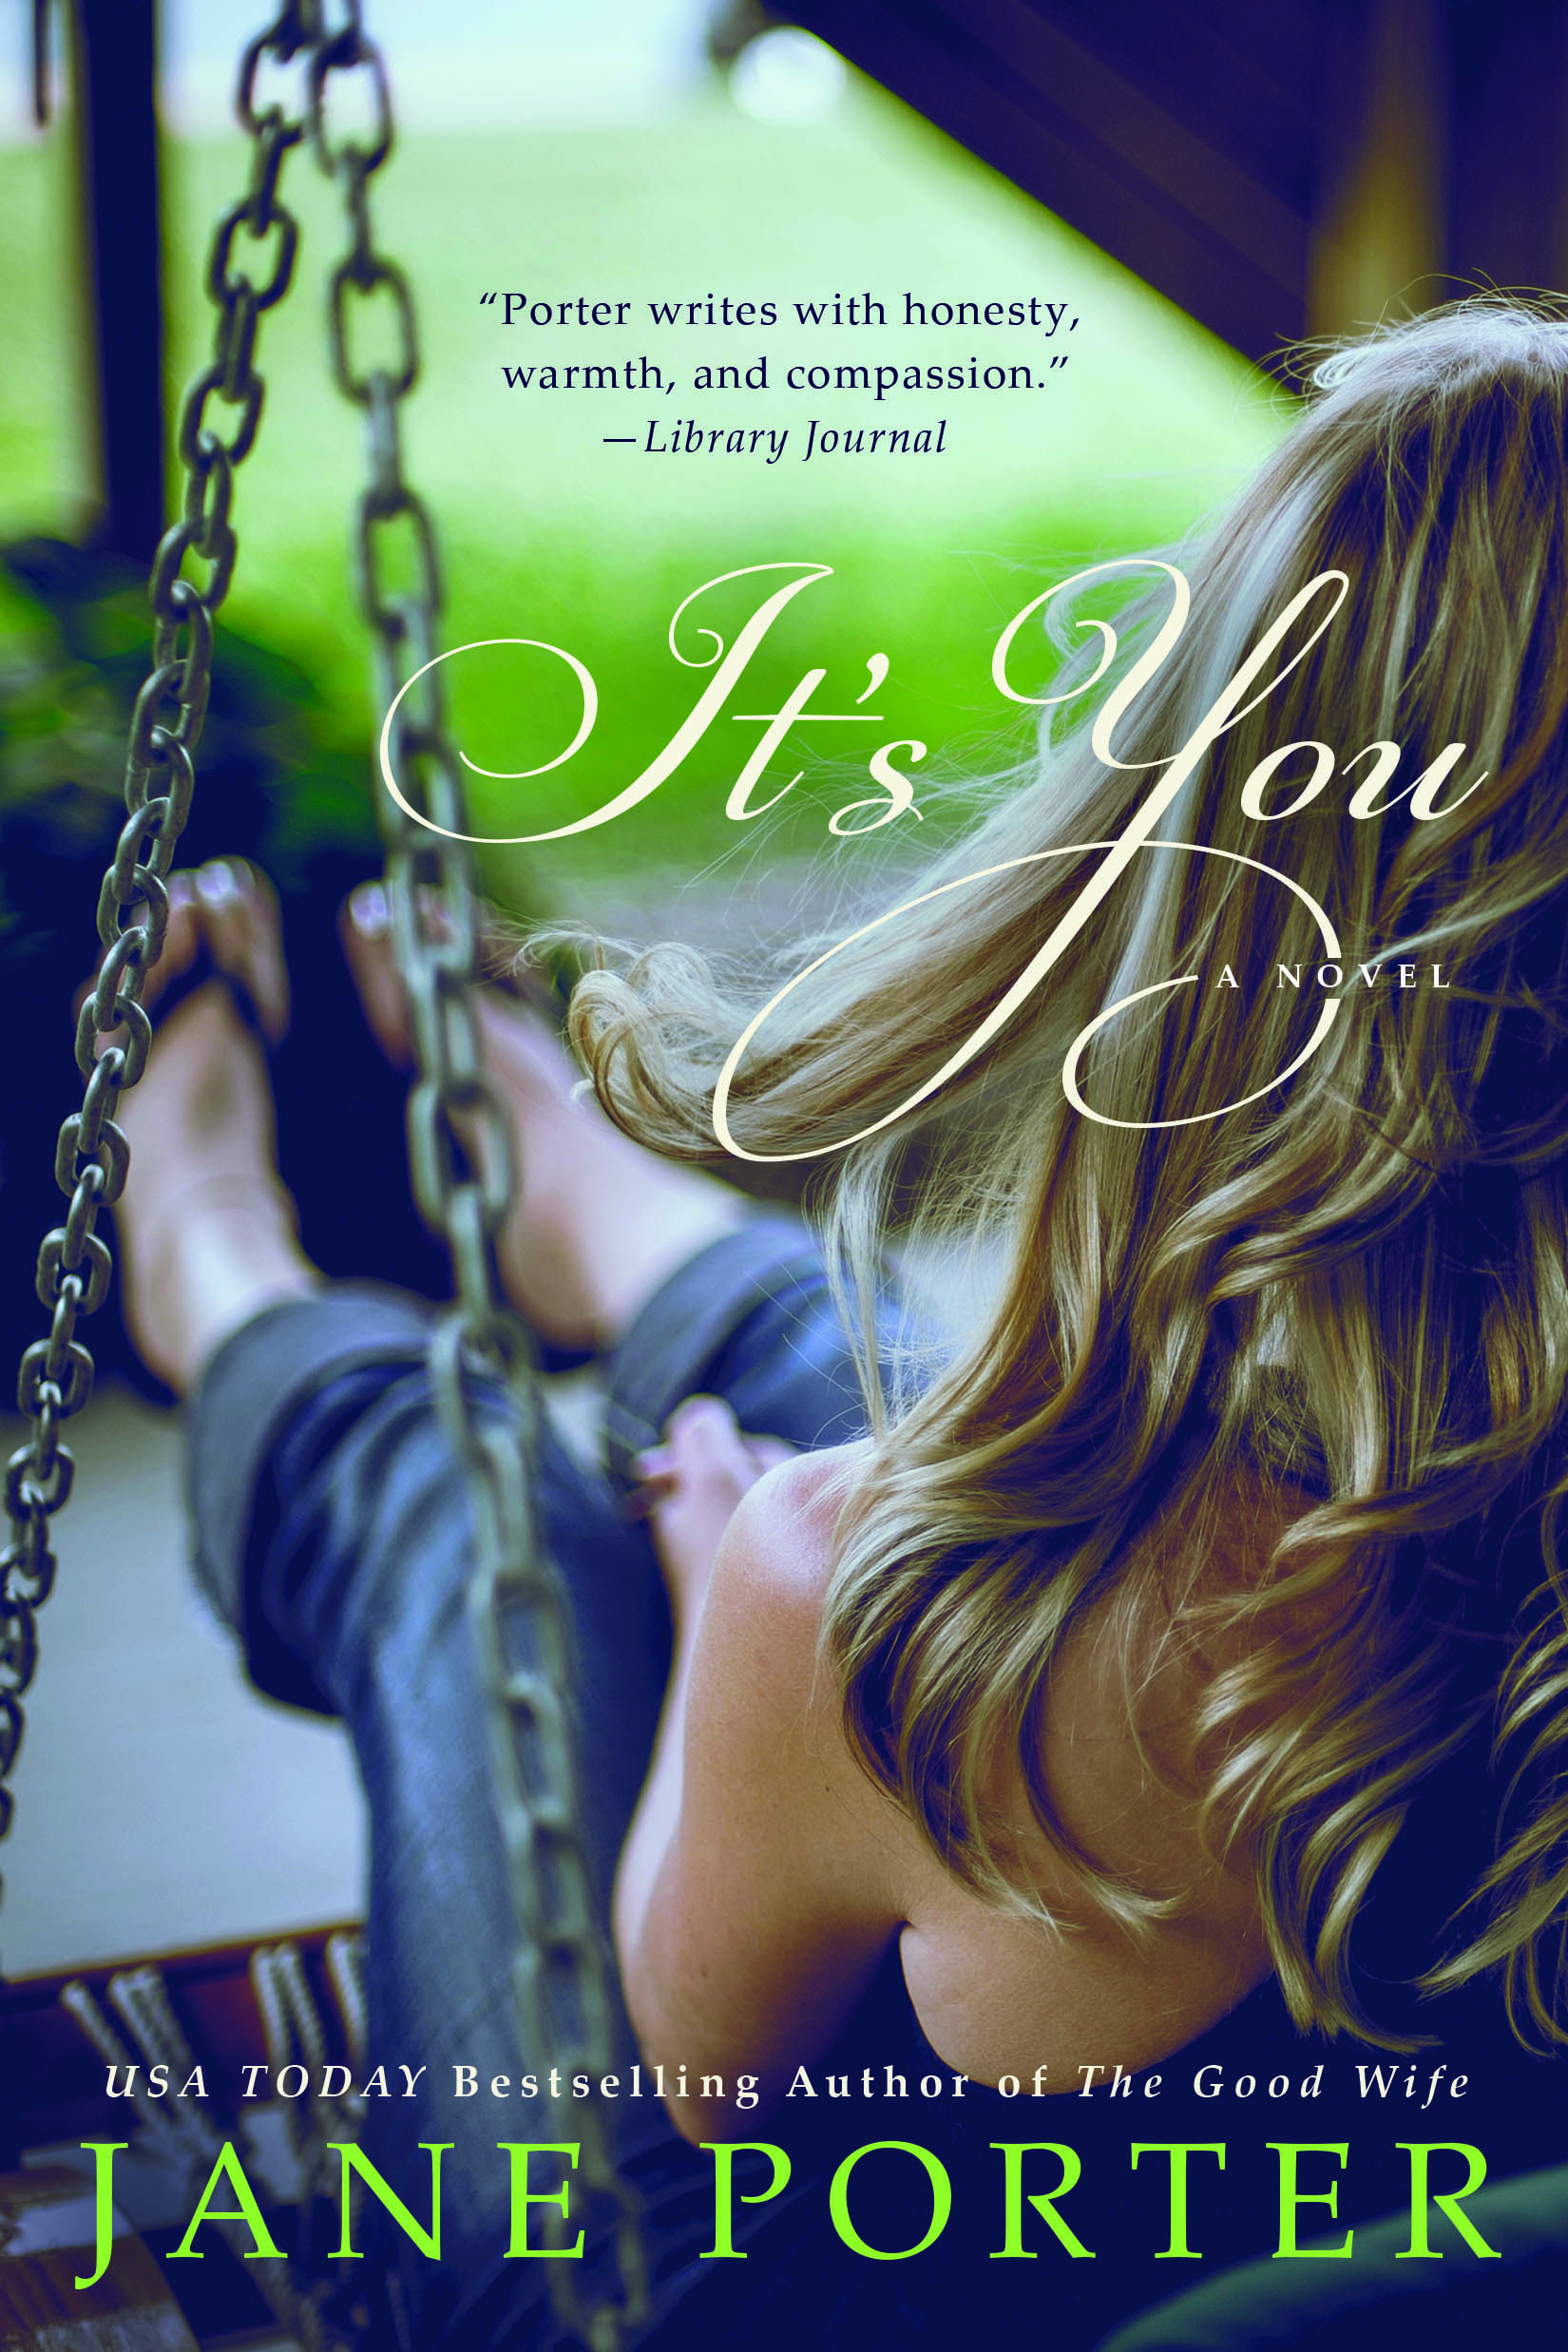 Novelas 2015 Libros Cover For The June 2015 Release It 39s You Berkley Books